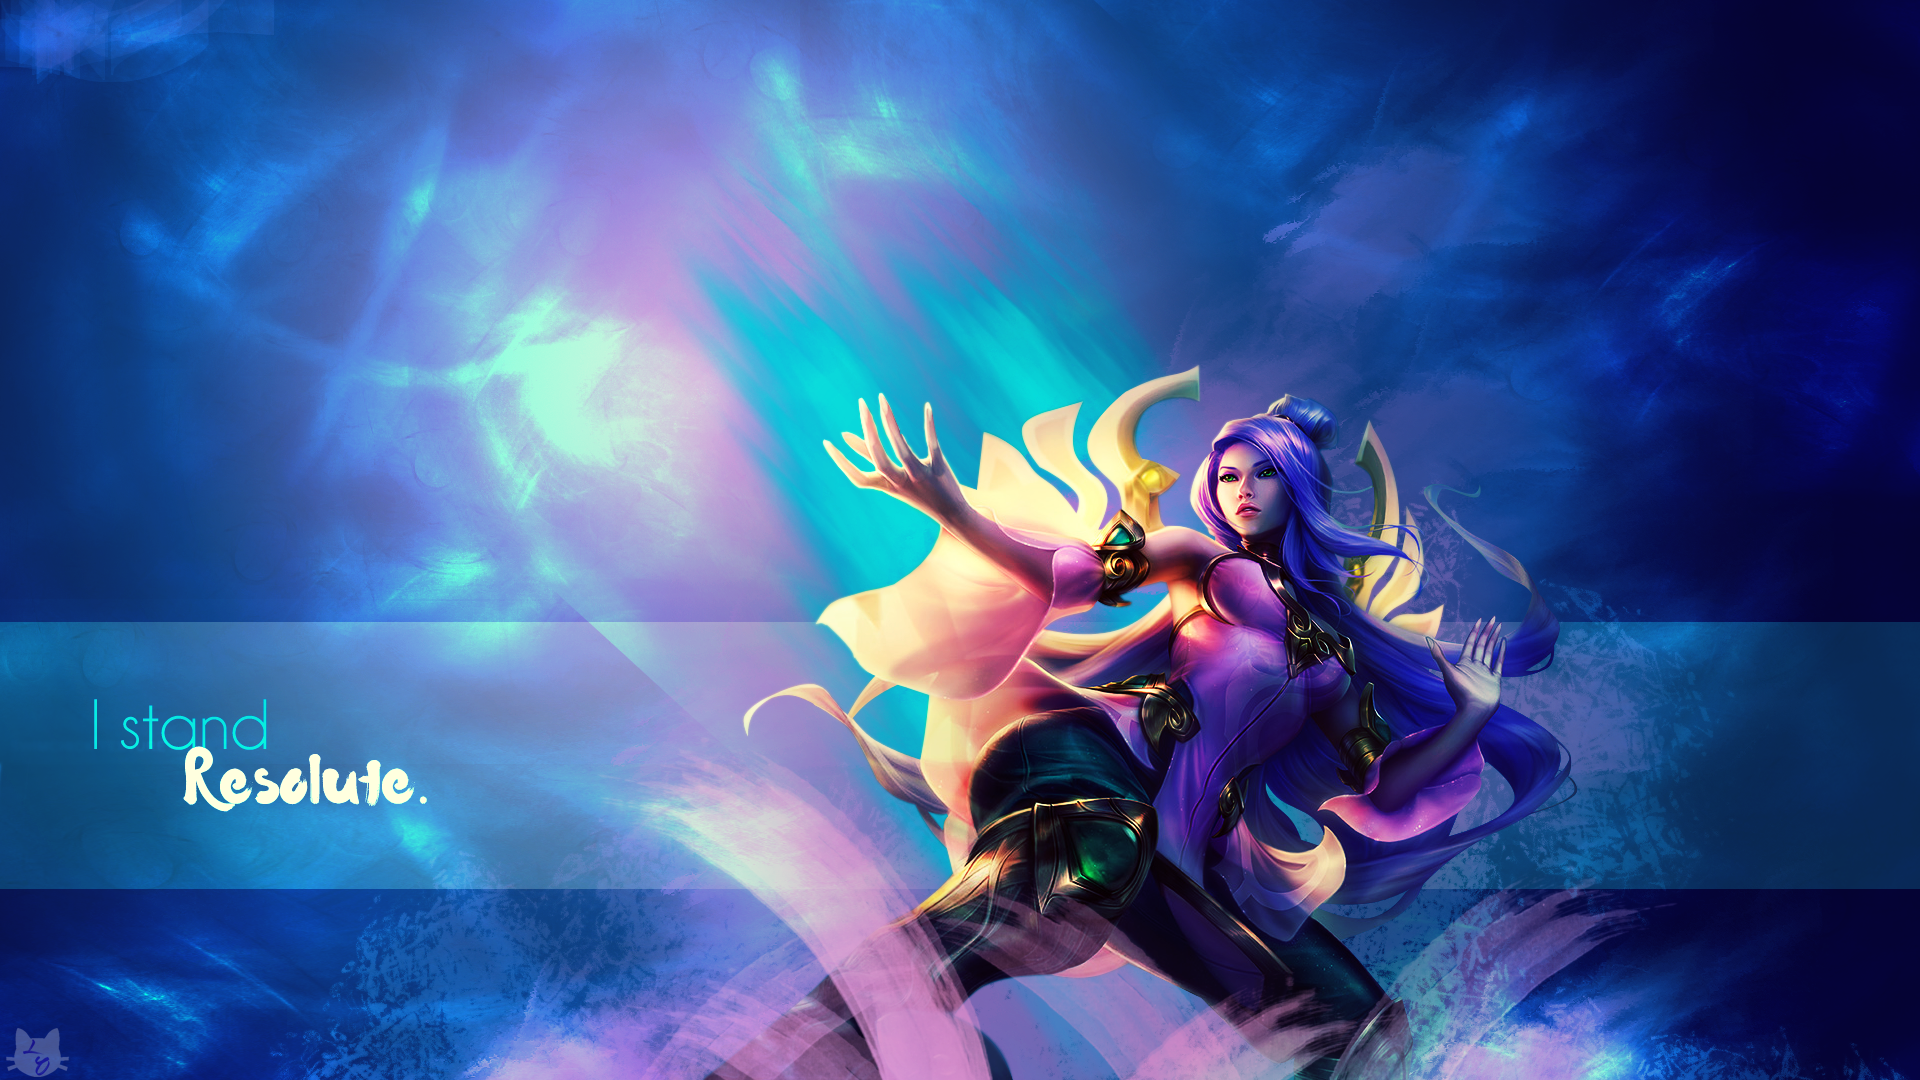 Order of the Lotus Irelia wallpaper